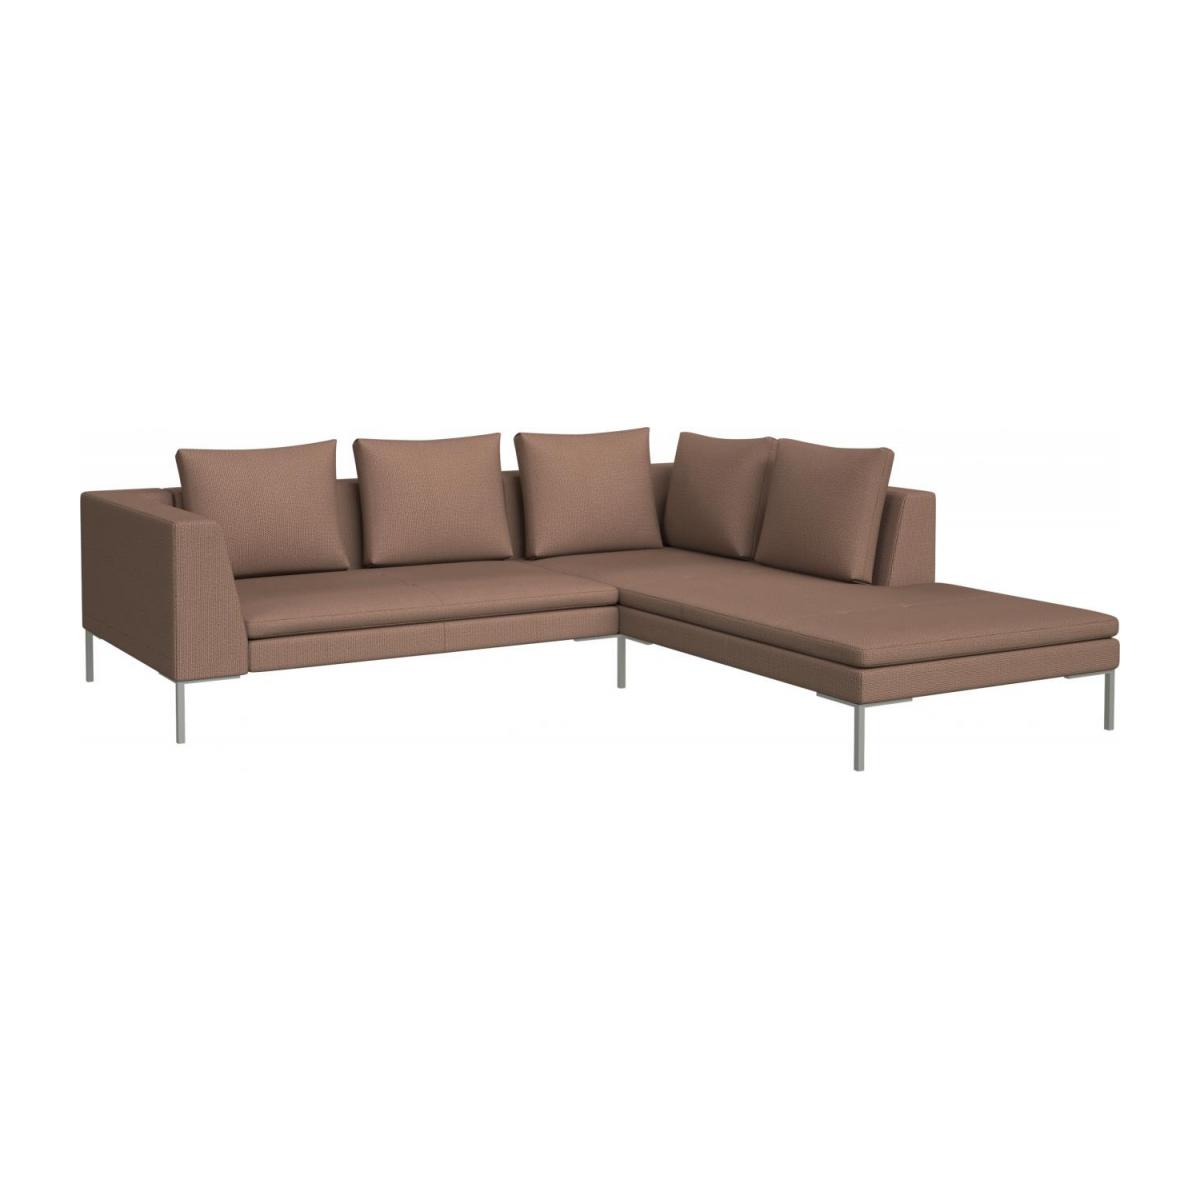 2 seater sofa with chaise longue on the right in Fasoli fabric, jatoba brown  n°1